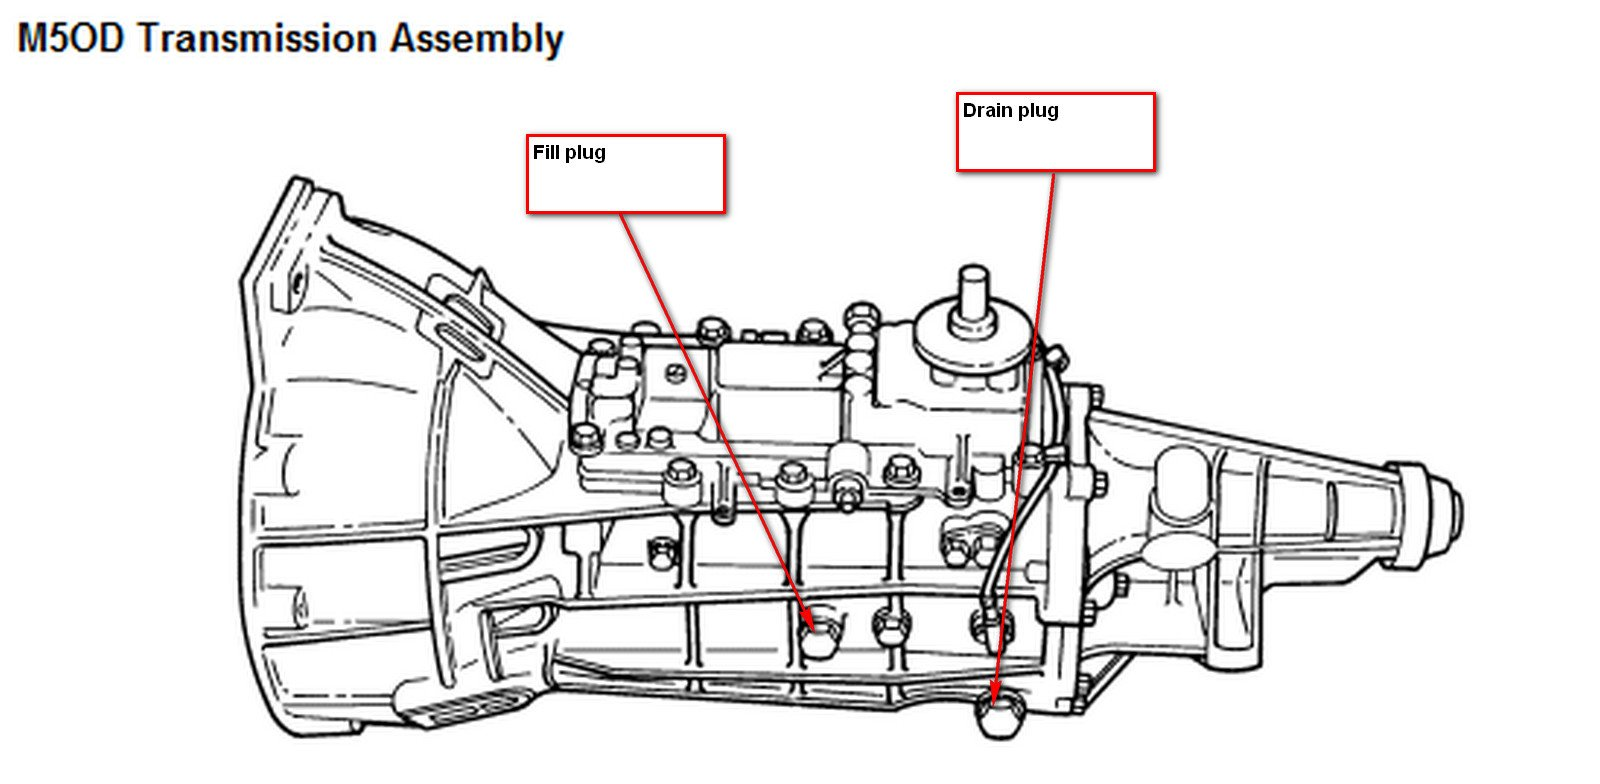 700r4 Transmission No Reverse Problems on 1998 Jaguar Xj8 Fuse Box Diagram